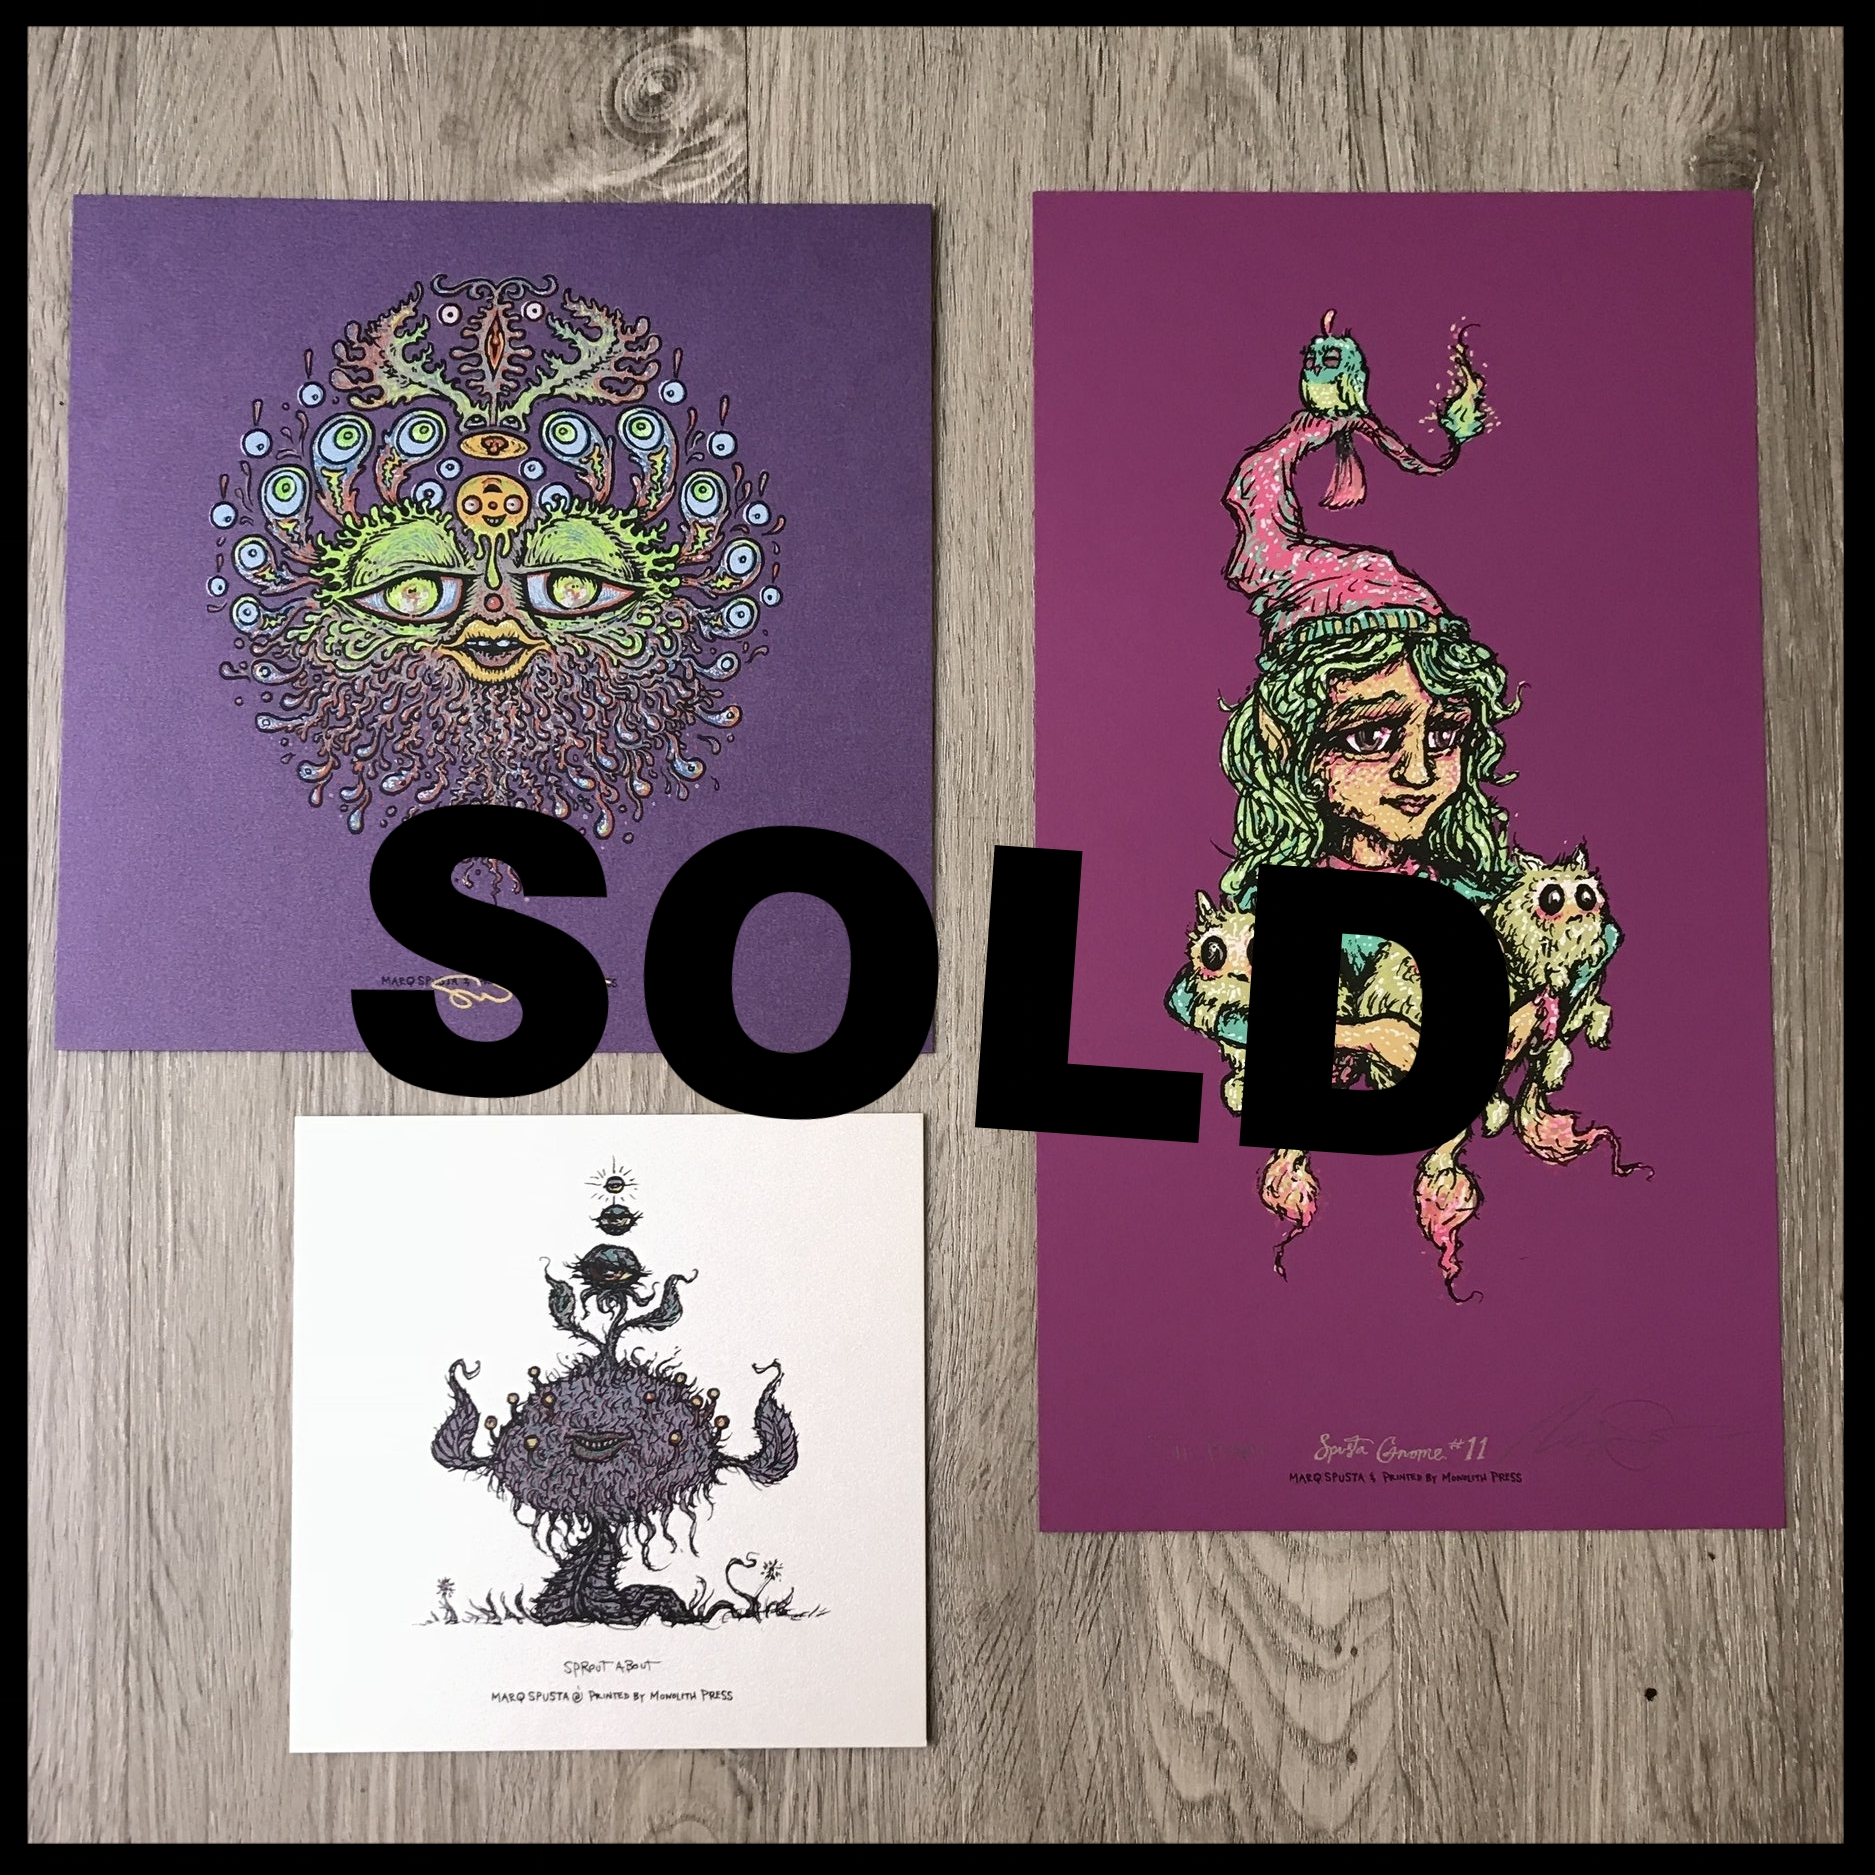 "$150 - PACK L - Dripples 7"" x 7"" + Full Size Gnome 11 Print 6"" x 11"" lightly embellished + Sprout About 5"" x 5"""